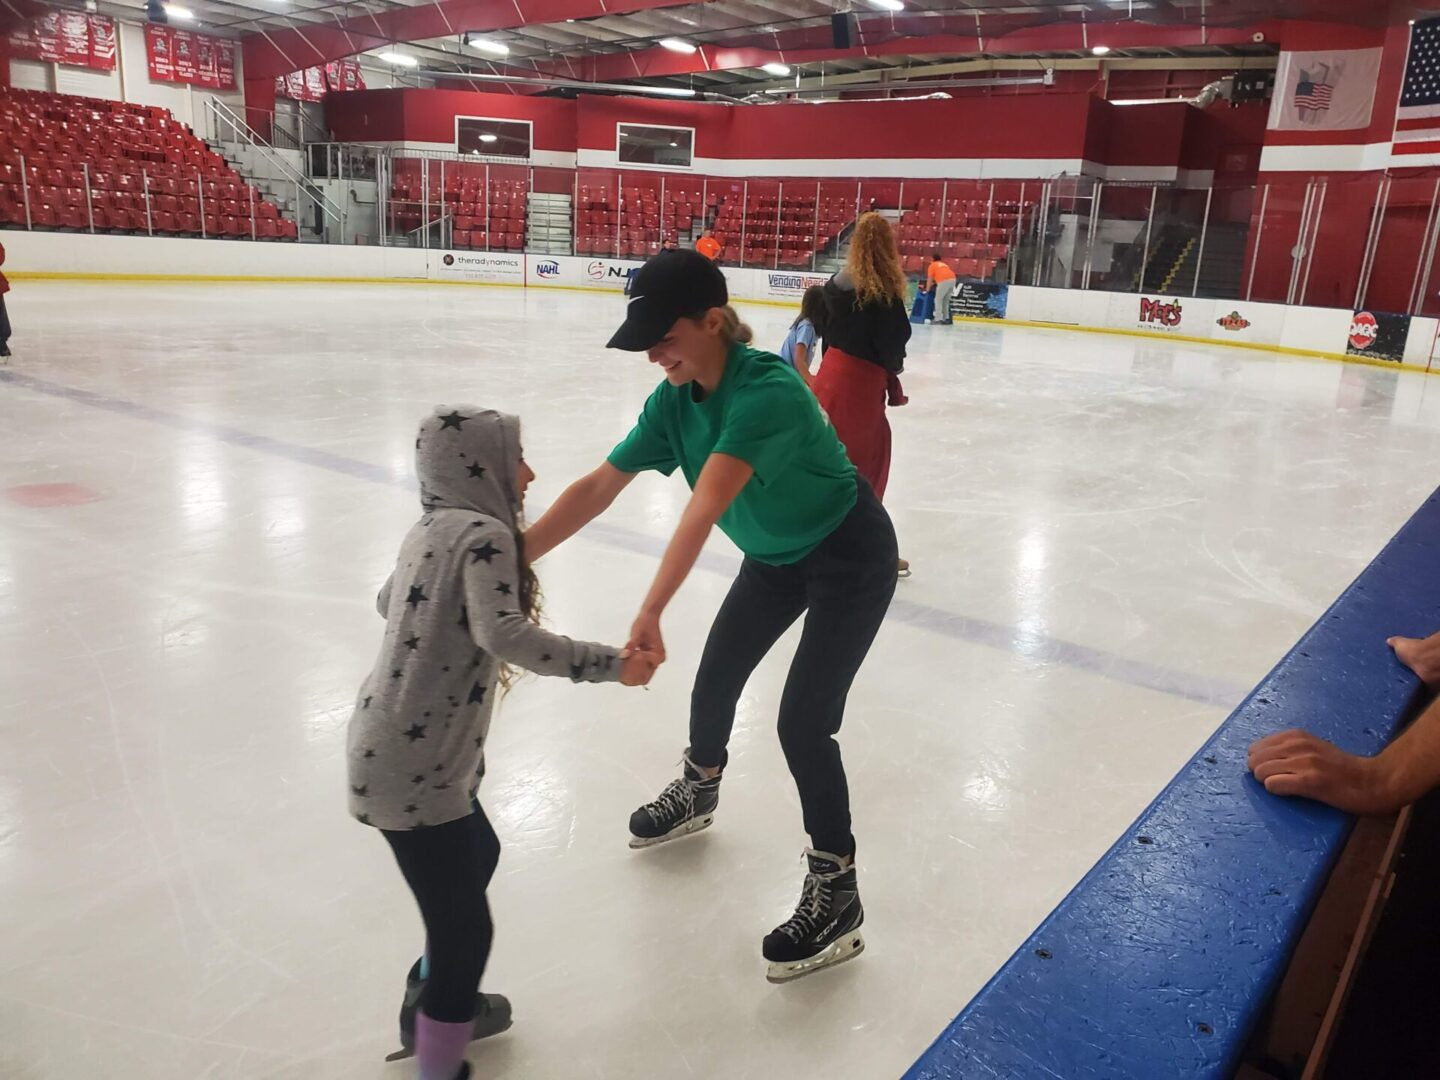 Home Page Empowering Emma and Phoebe on Ice